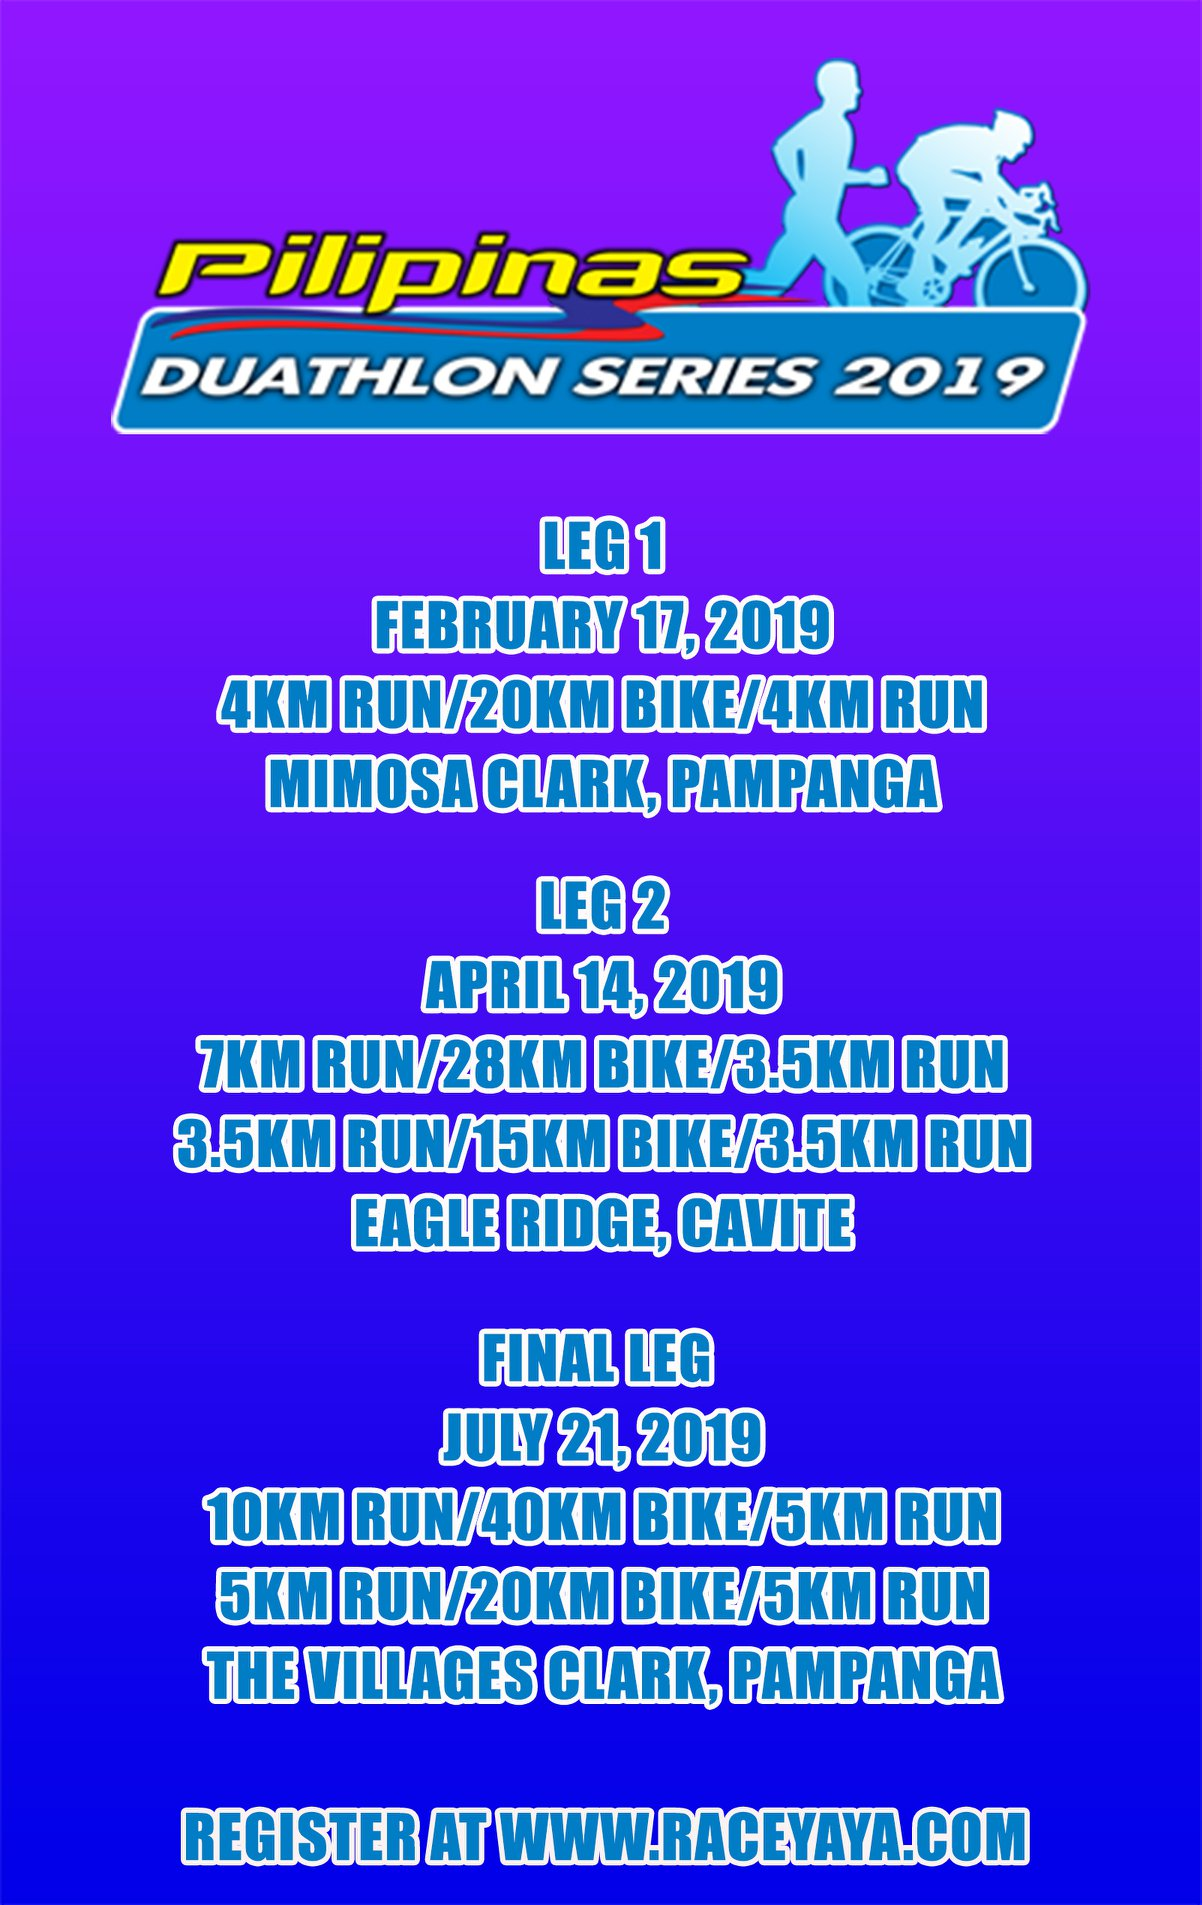 PILIPINAS DUATHLON SERIES 2019 FINAL LEG